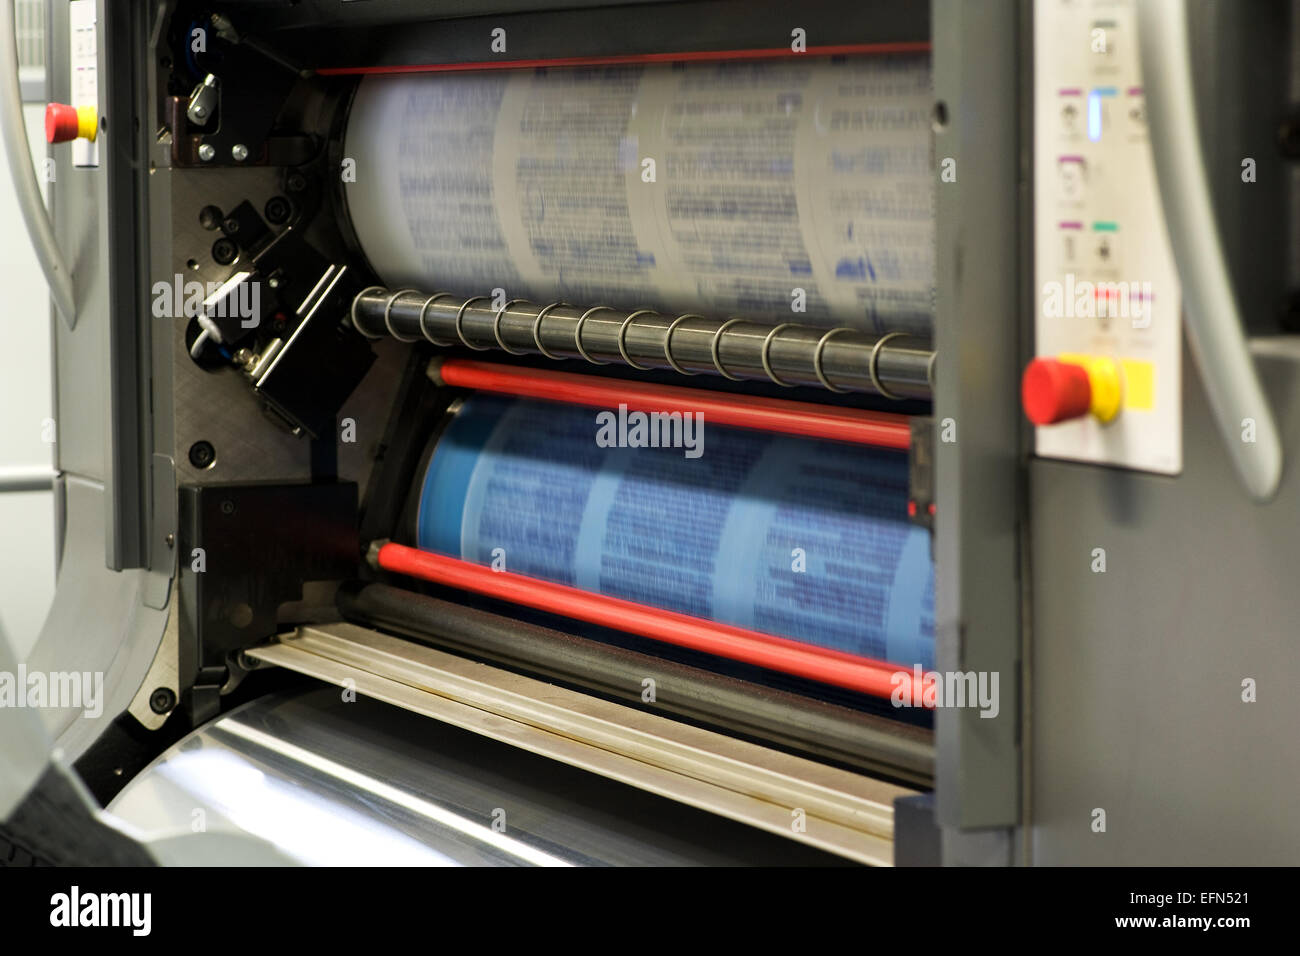 Printing Plenty of Documents or Papers Using Rotary Printing Press Machine. - Stock Image